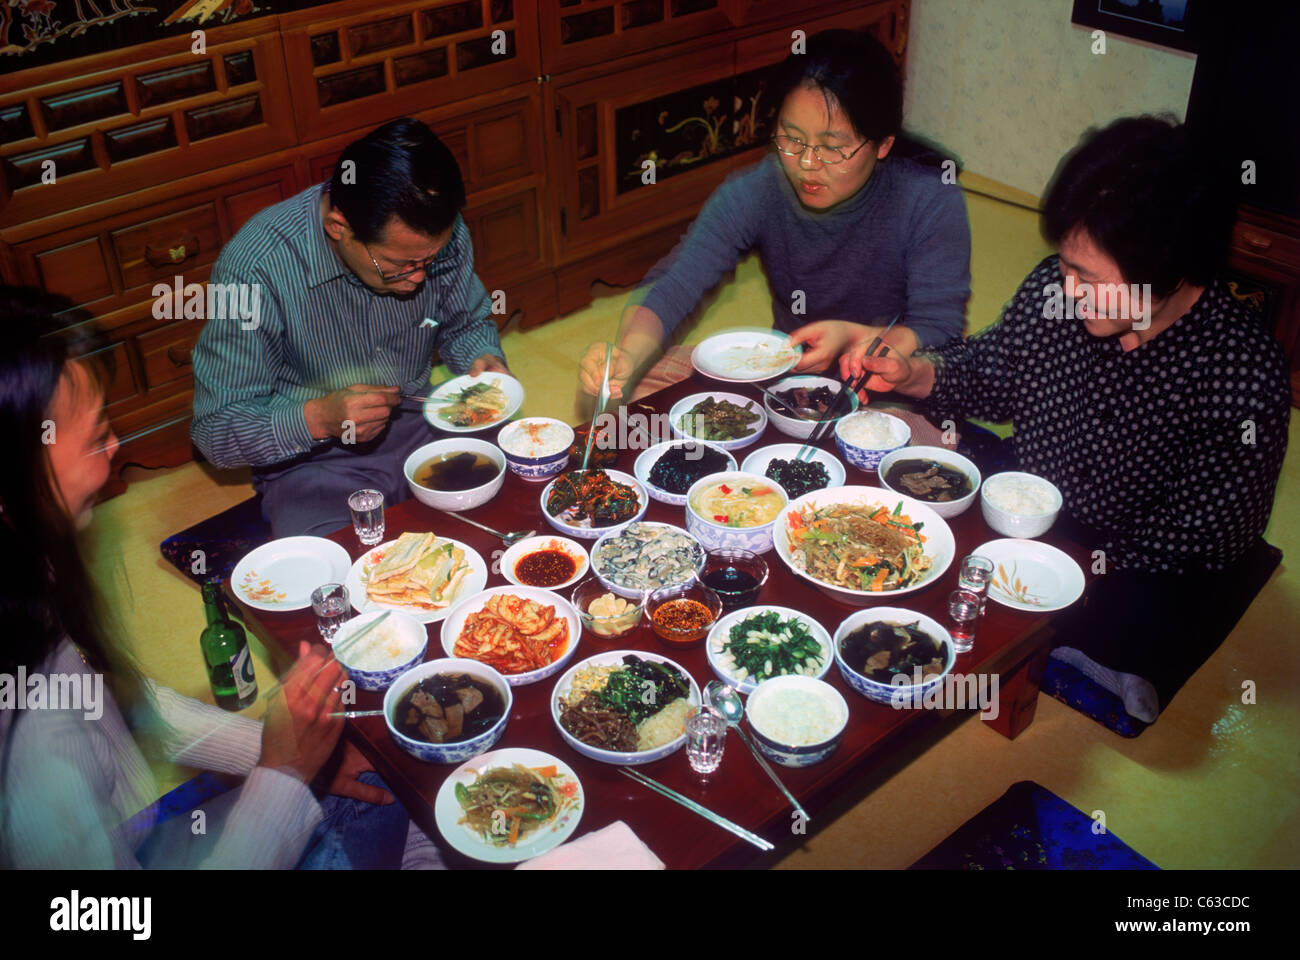 Family sitting at dinner table eating variety of home made Korean foods in South Korea - Stock Image